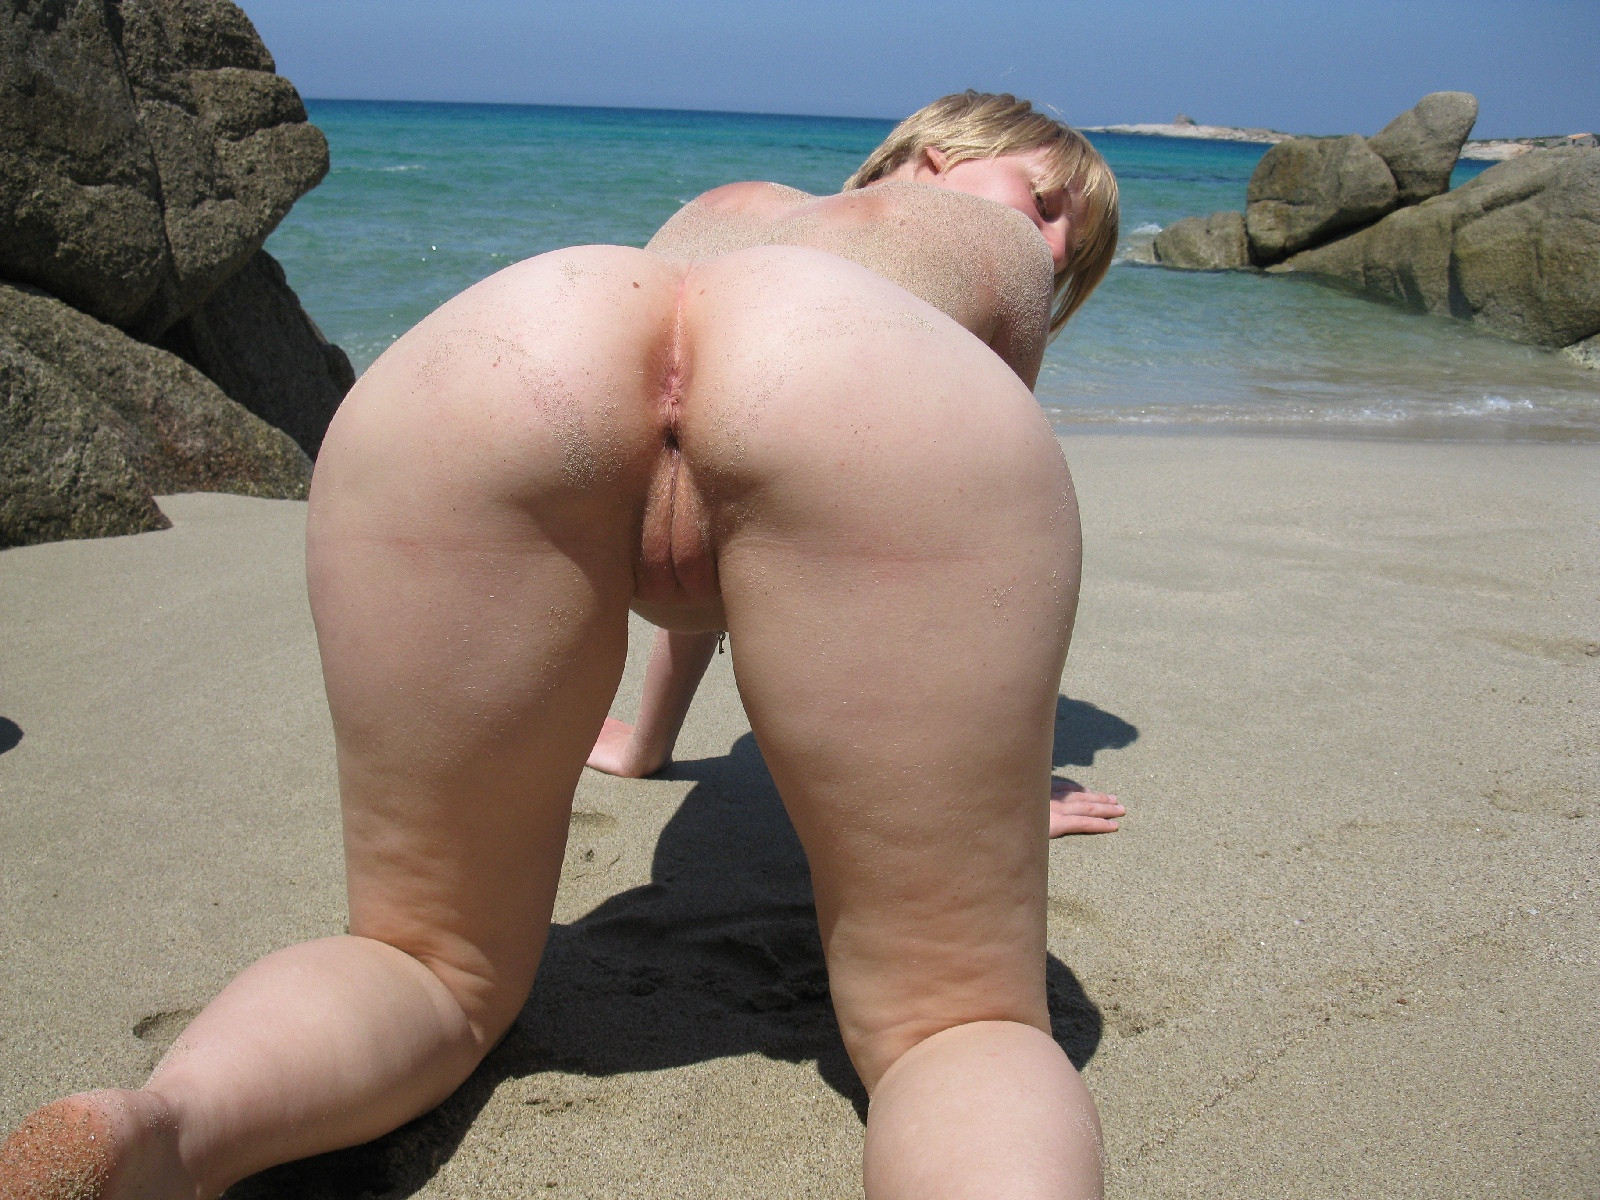 Woman nude ass hole beach